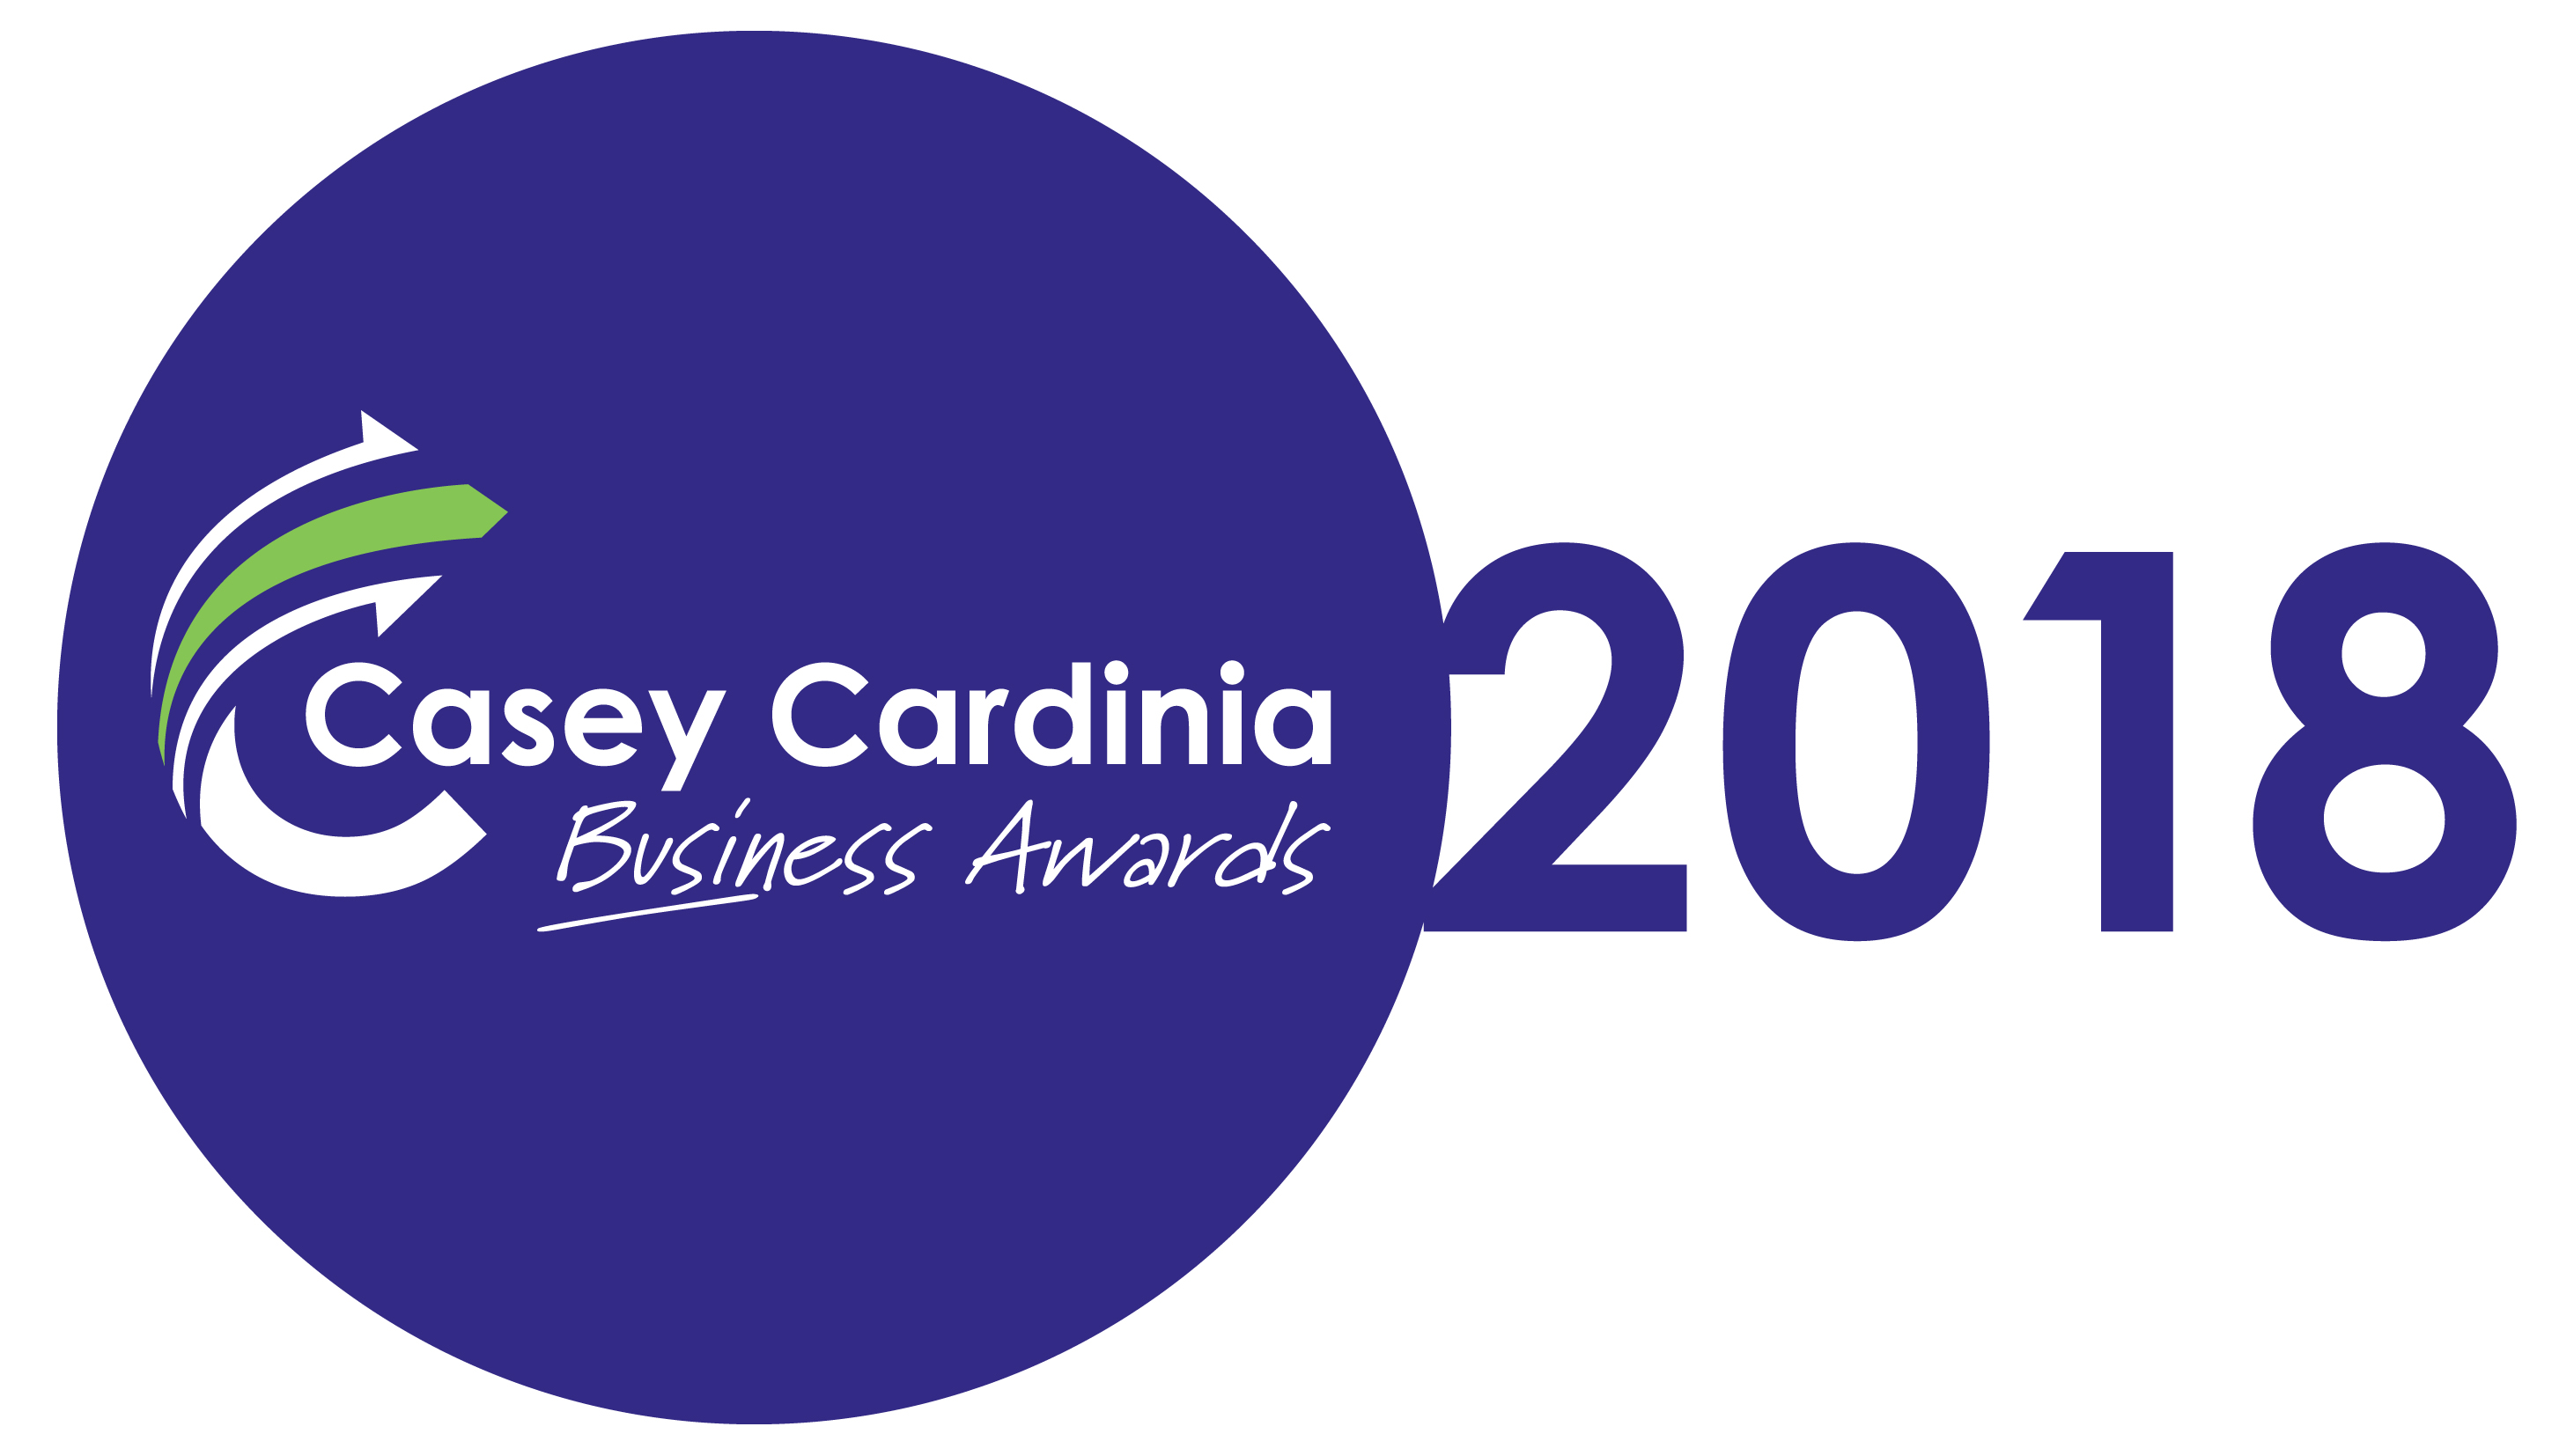 Casey Cardinia Business Awards 2018